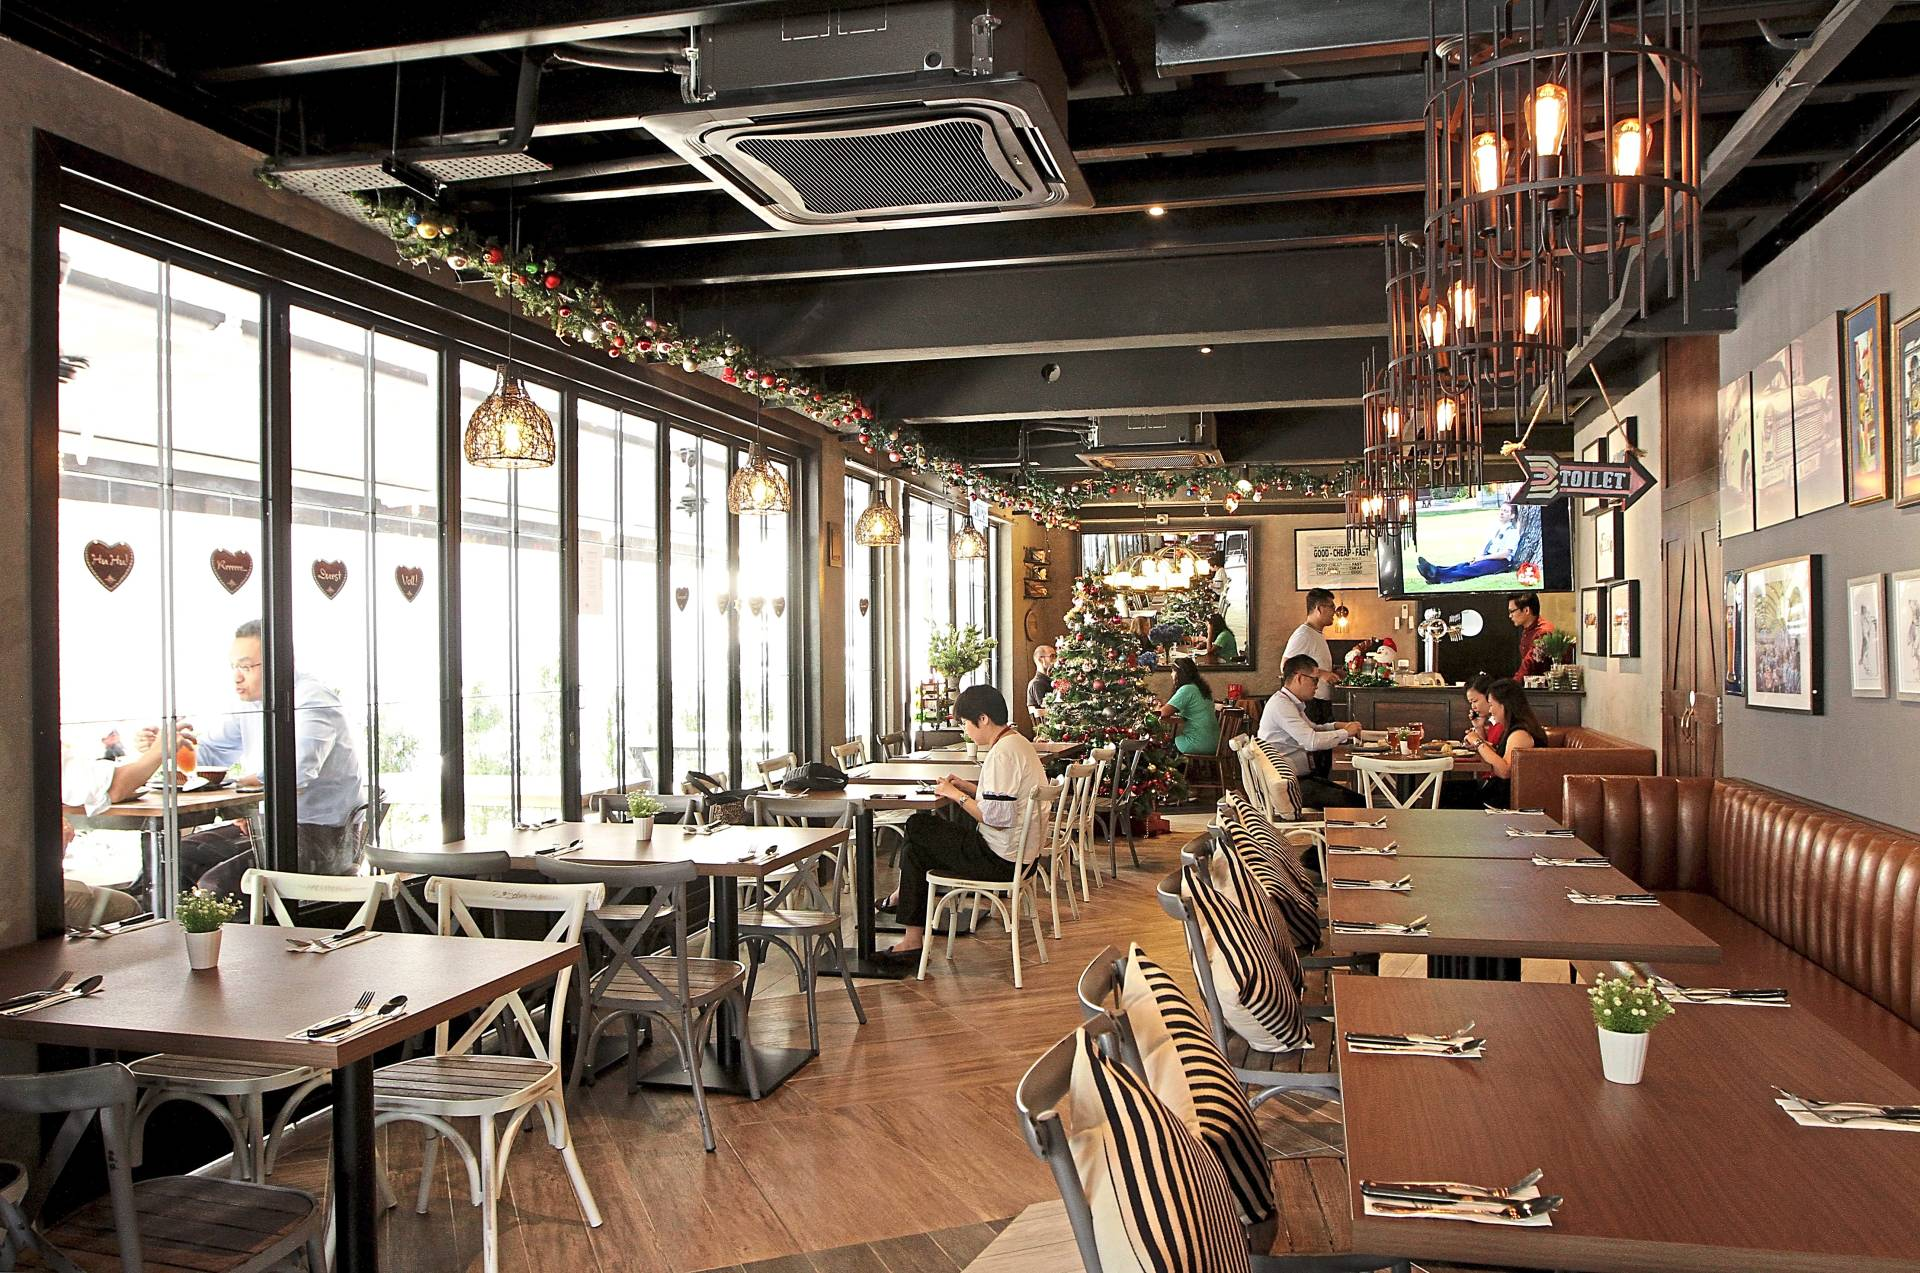 The interior of the eatery is modern and very welcoming.